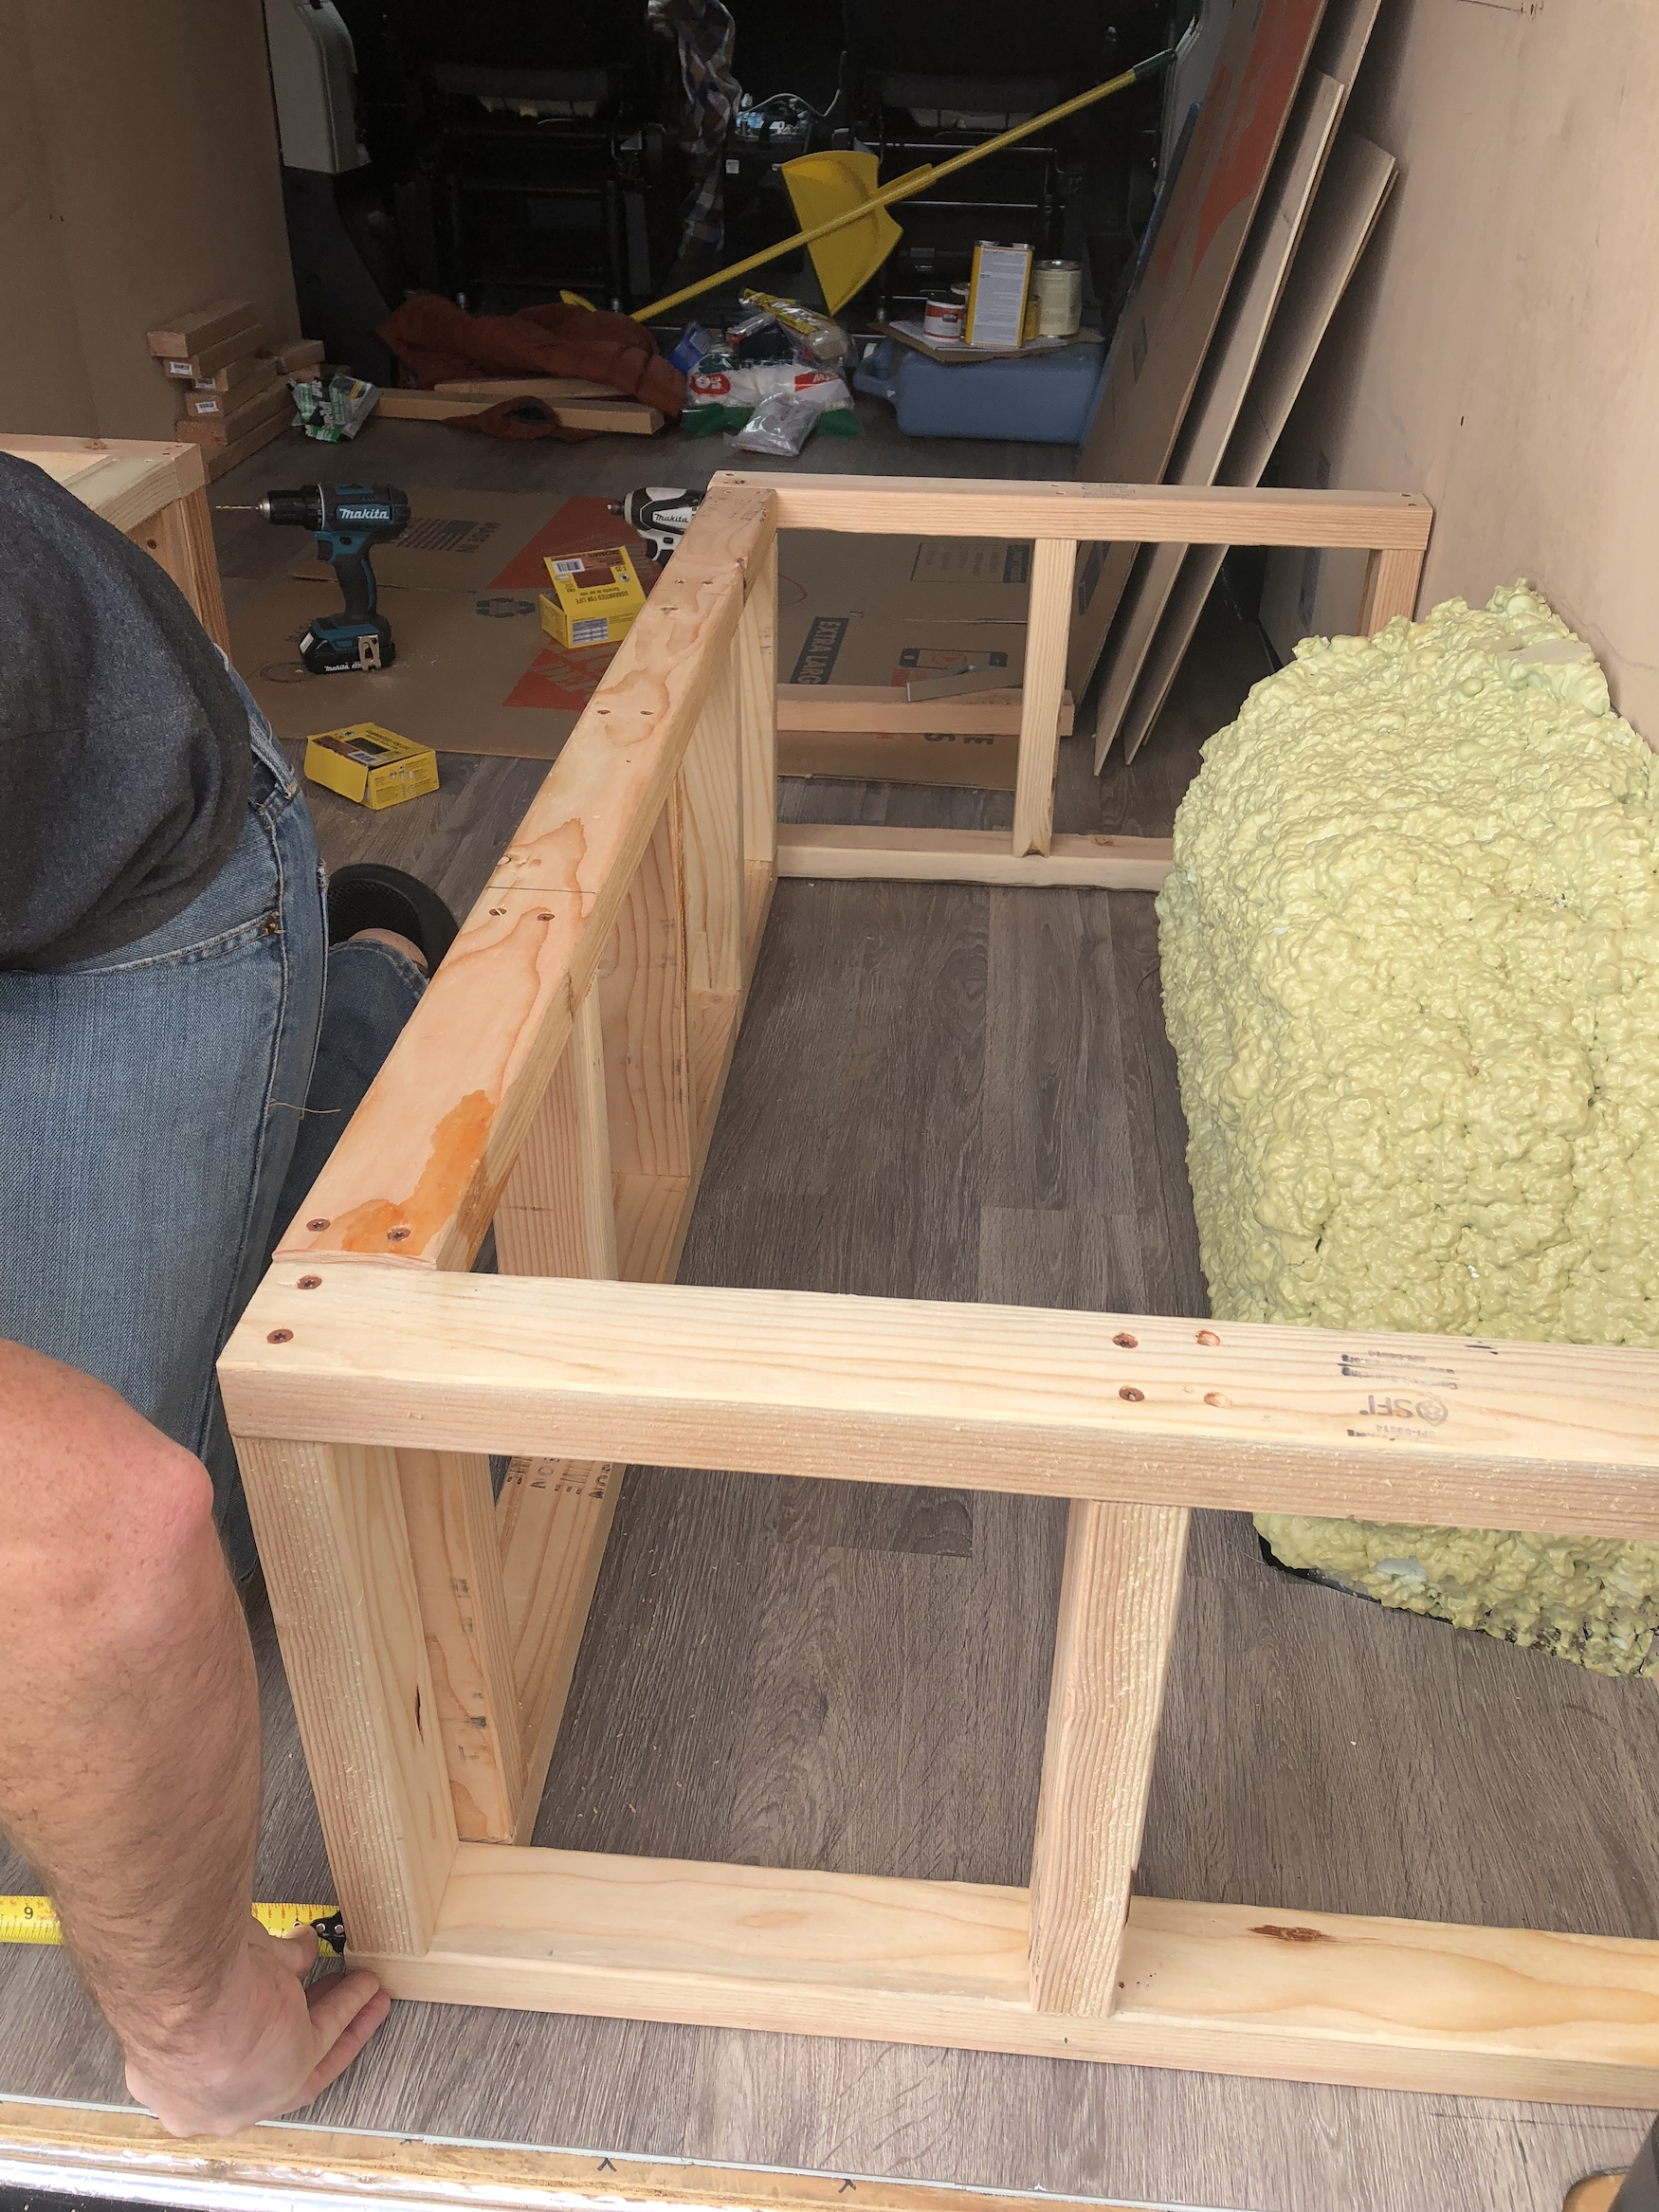 How To Build A Convertible Bed And Bench Seat In A Ram Promaster Tips To Prepare For Van Life